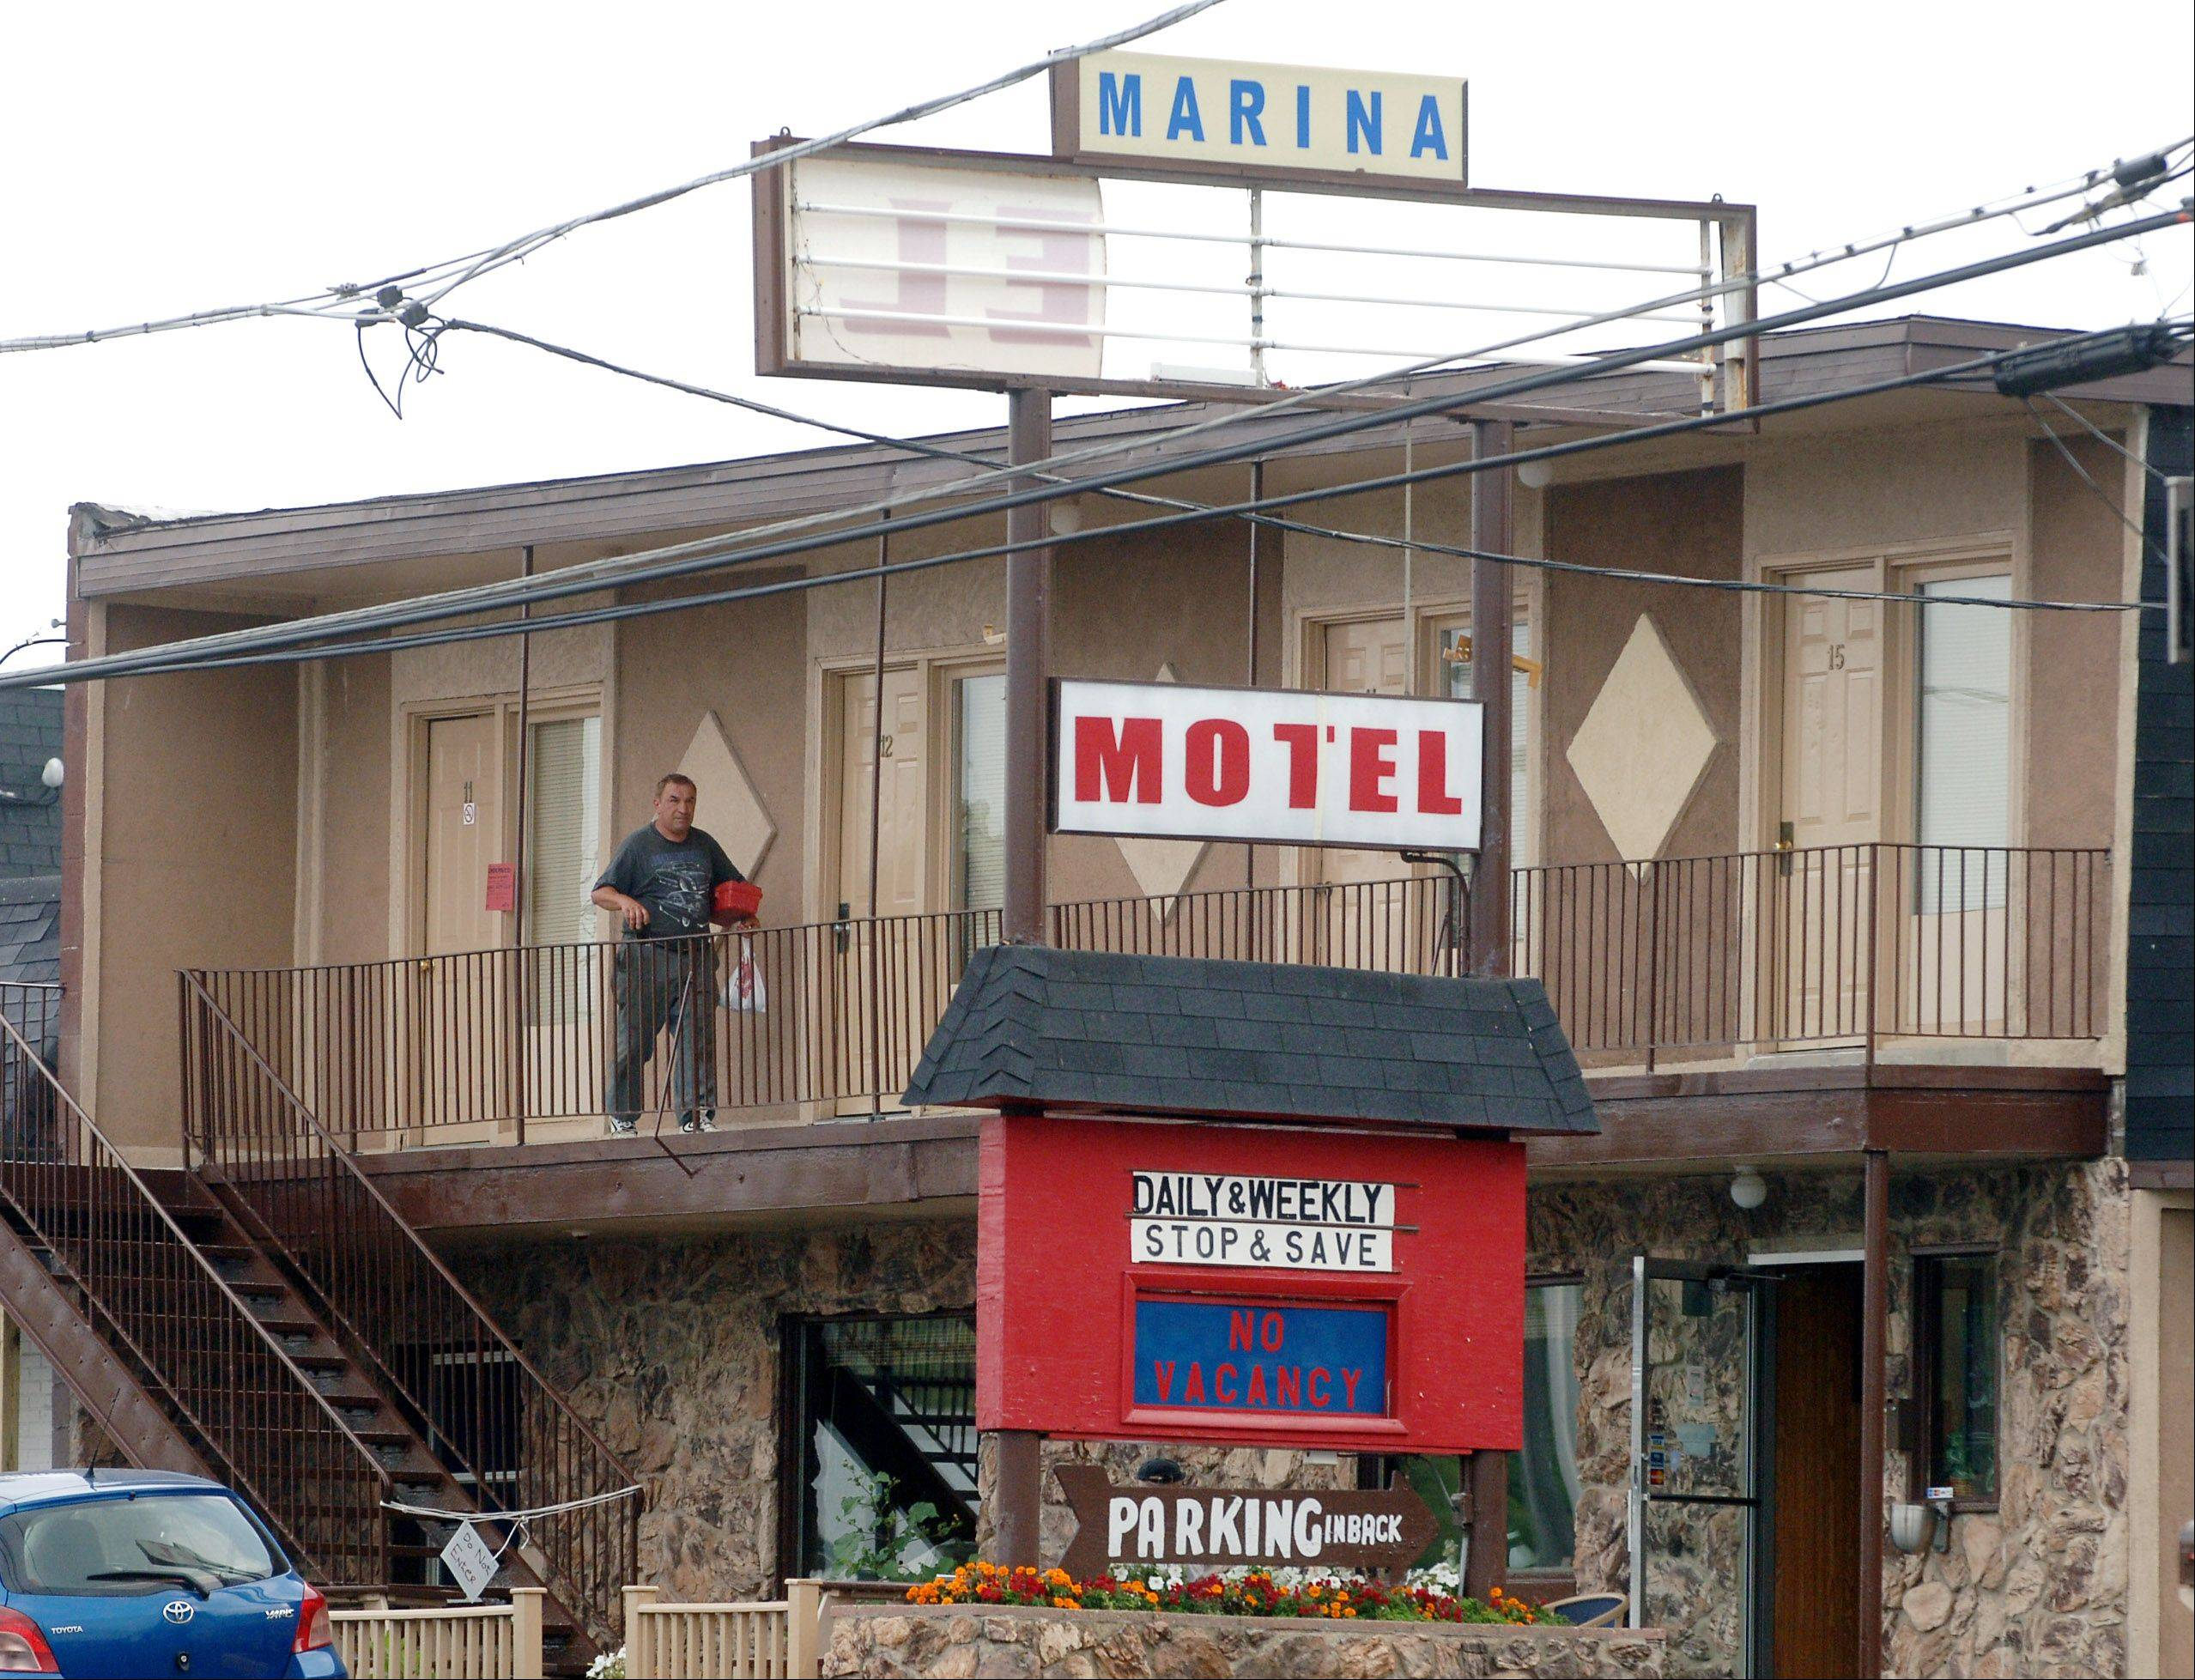 The Marina Motel on Route 12 in Fox Lake when it was shut down in 2009 because of building code violations.